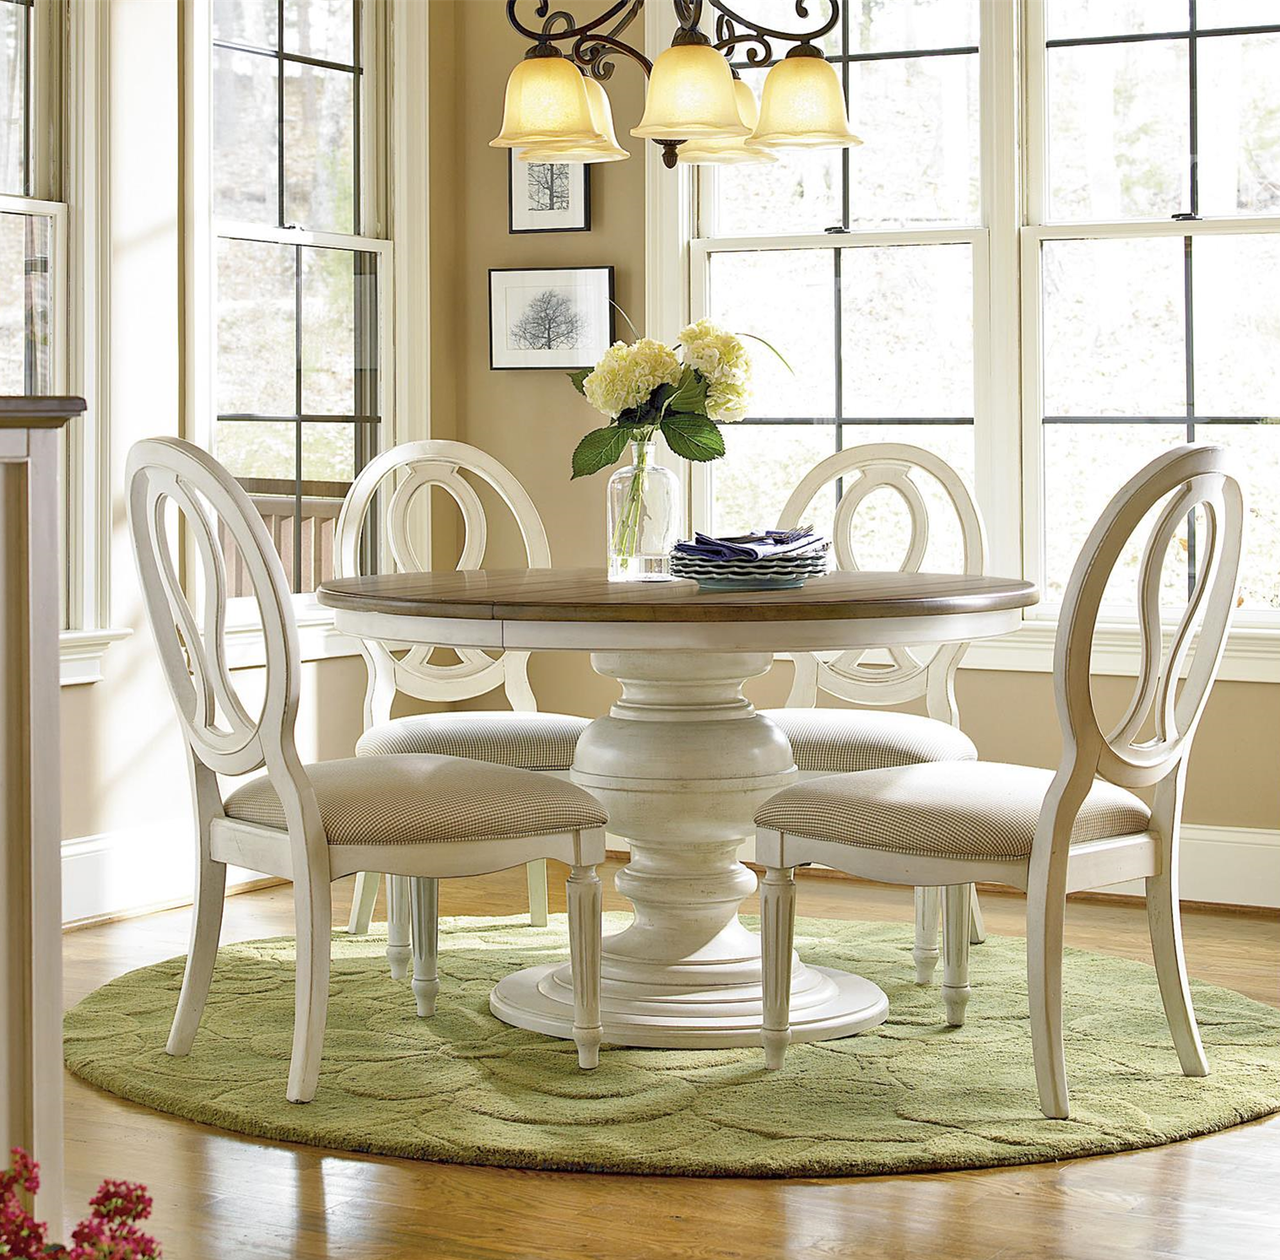 White Kitchen Dining Sets: Country-Chic 5 Piece Round White Dining Table Set